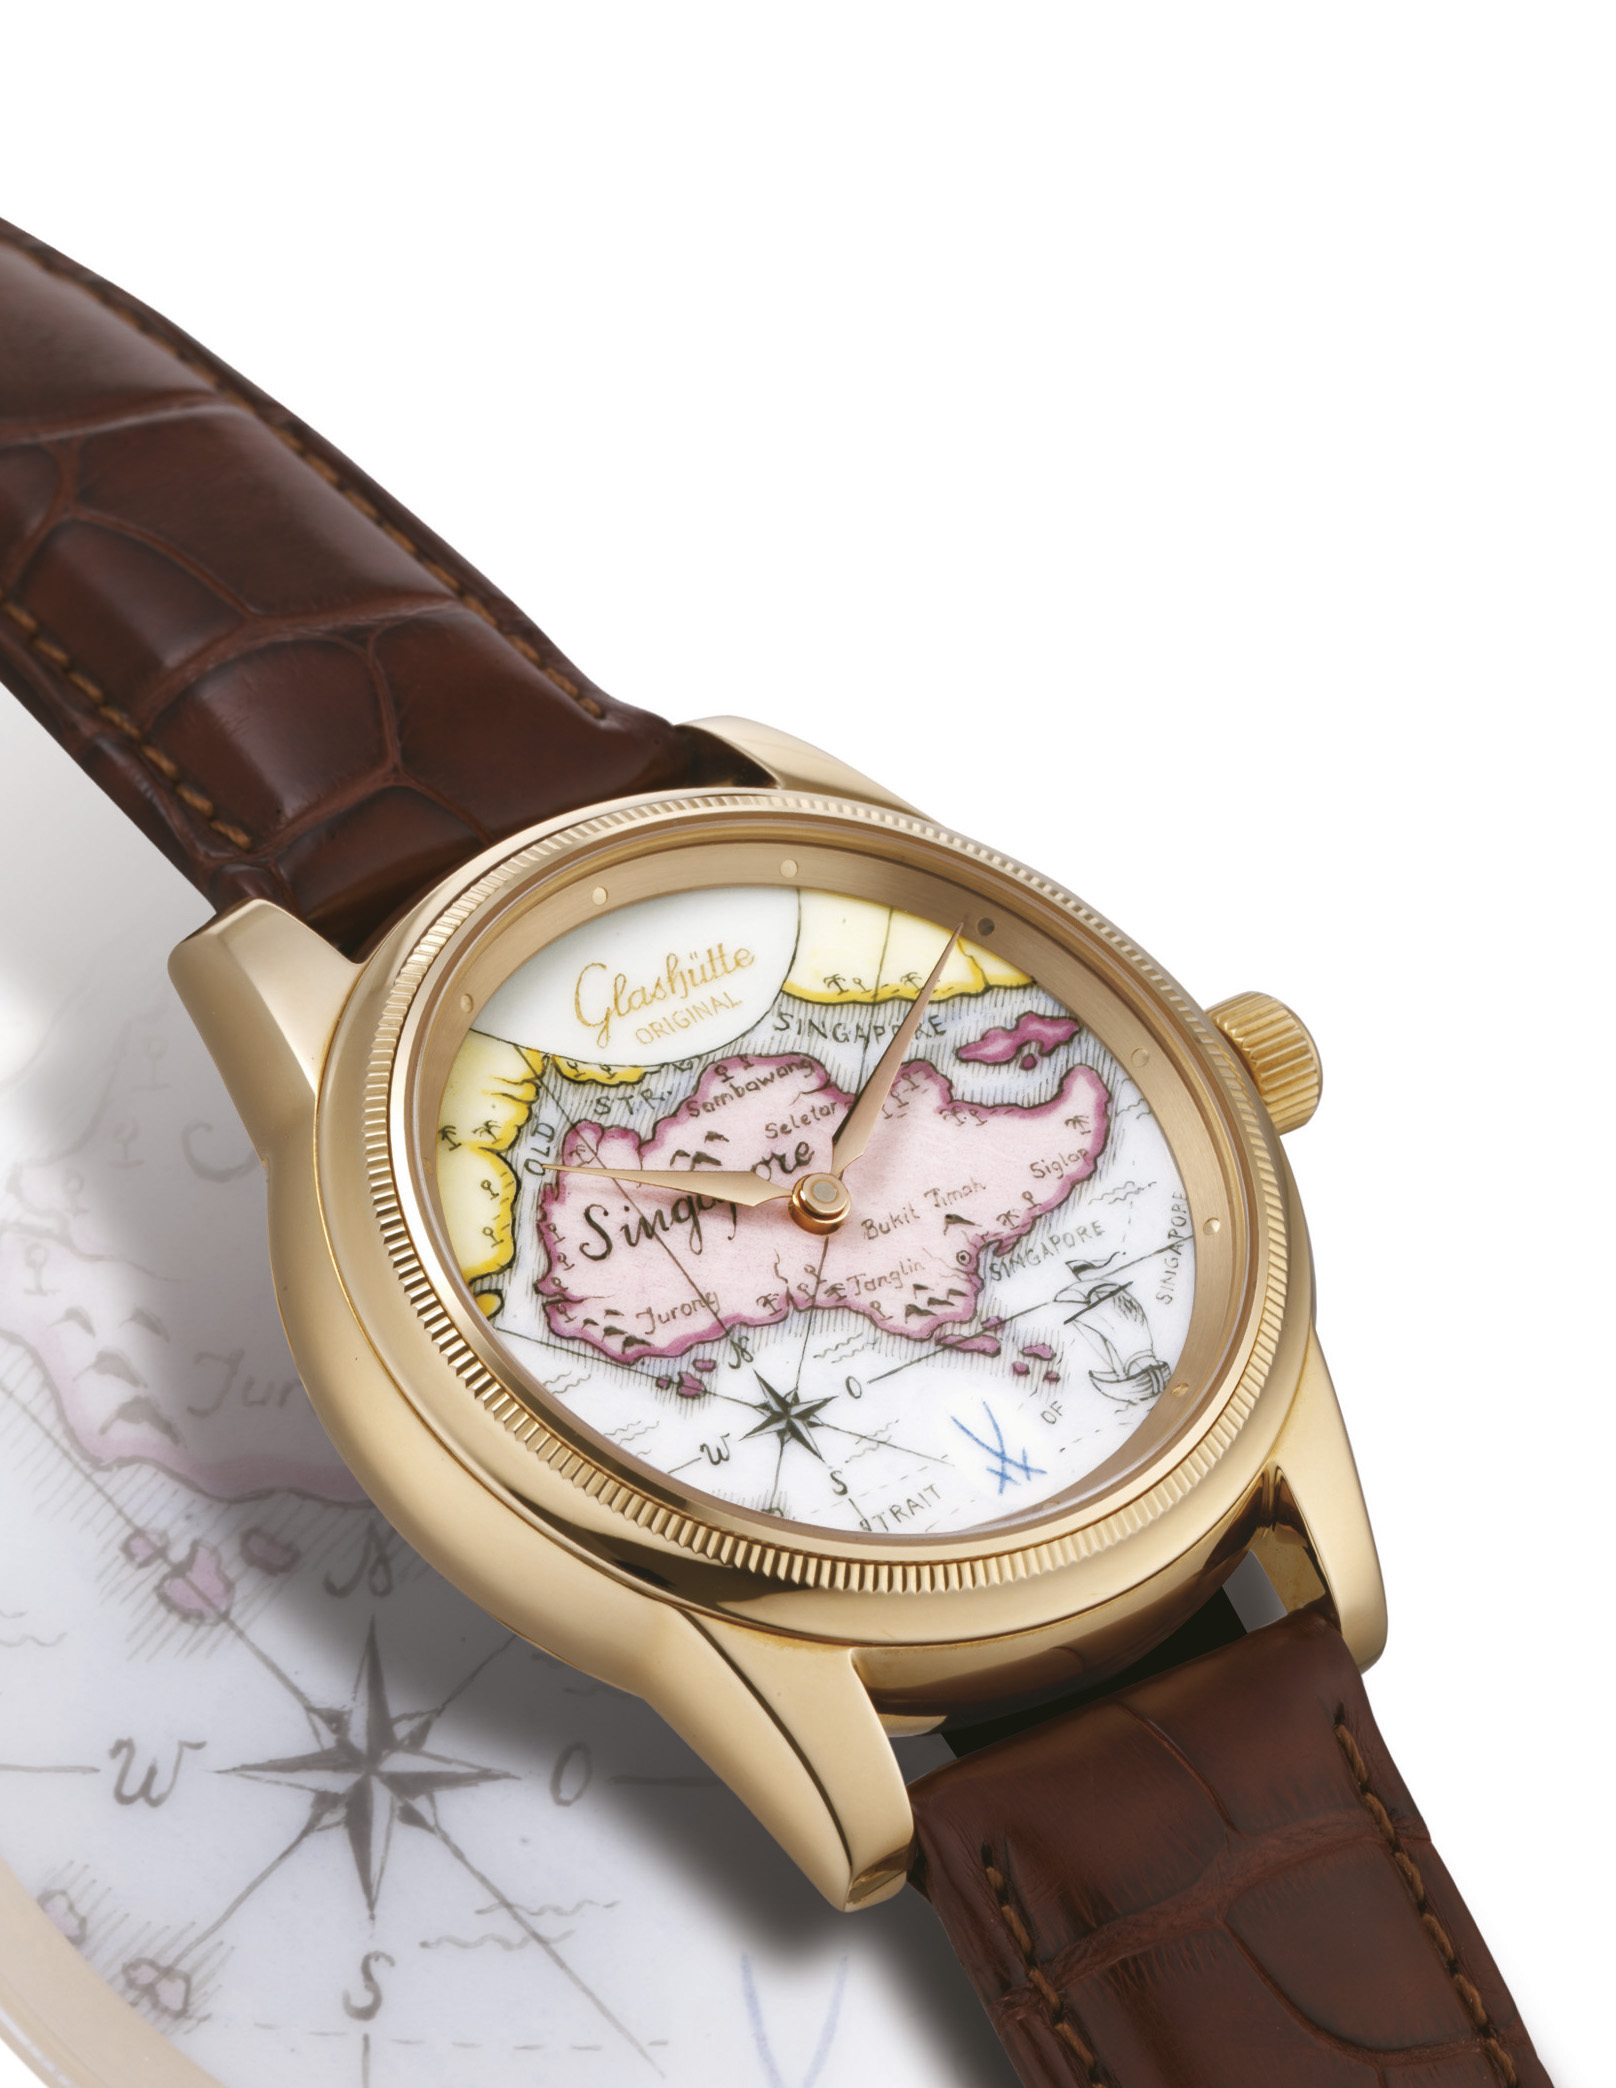 GLASHÜTTE ORIGINAL, SINGAPORE  PINK GOLD MANUALLY-WOUND WRISTWATCH WITH MEISSEN PORCELAIN DIAL, LIMITED EDITION OF 10